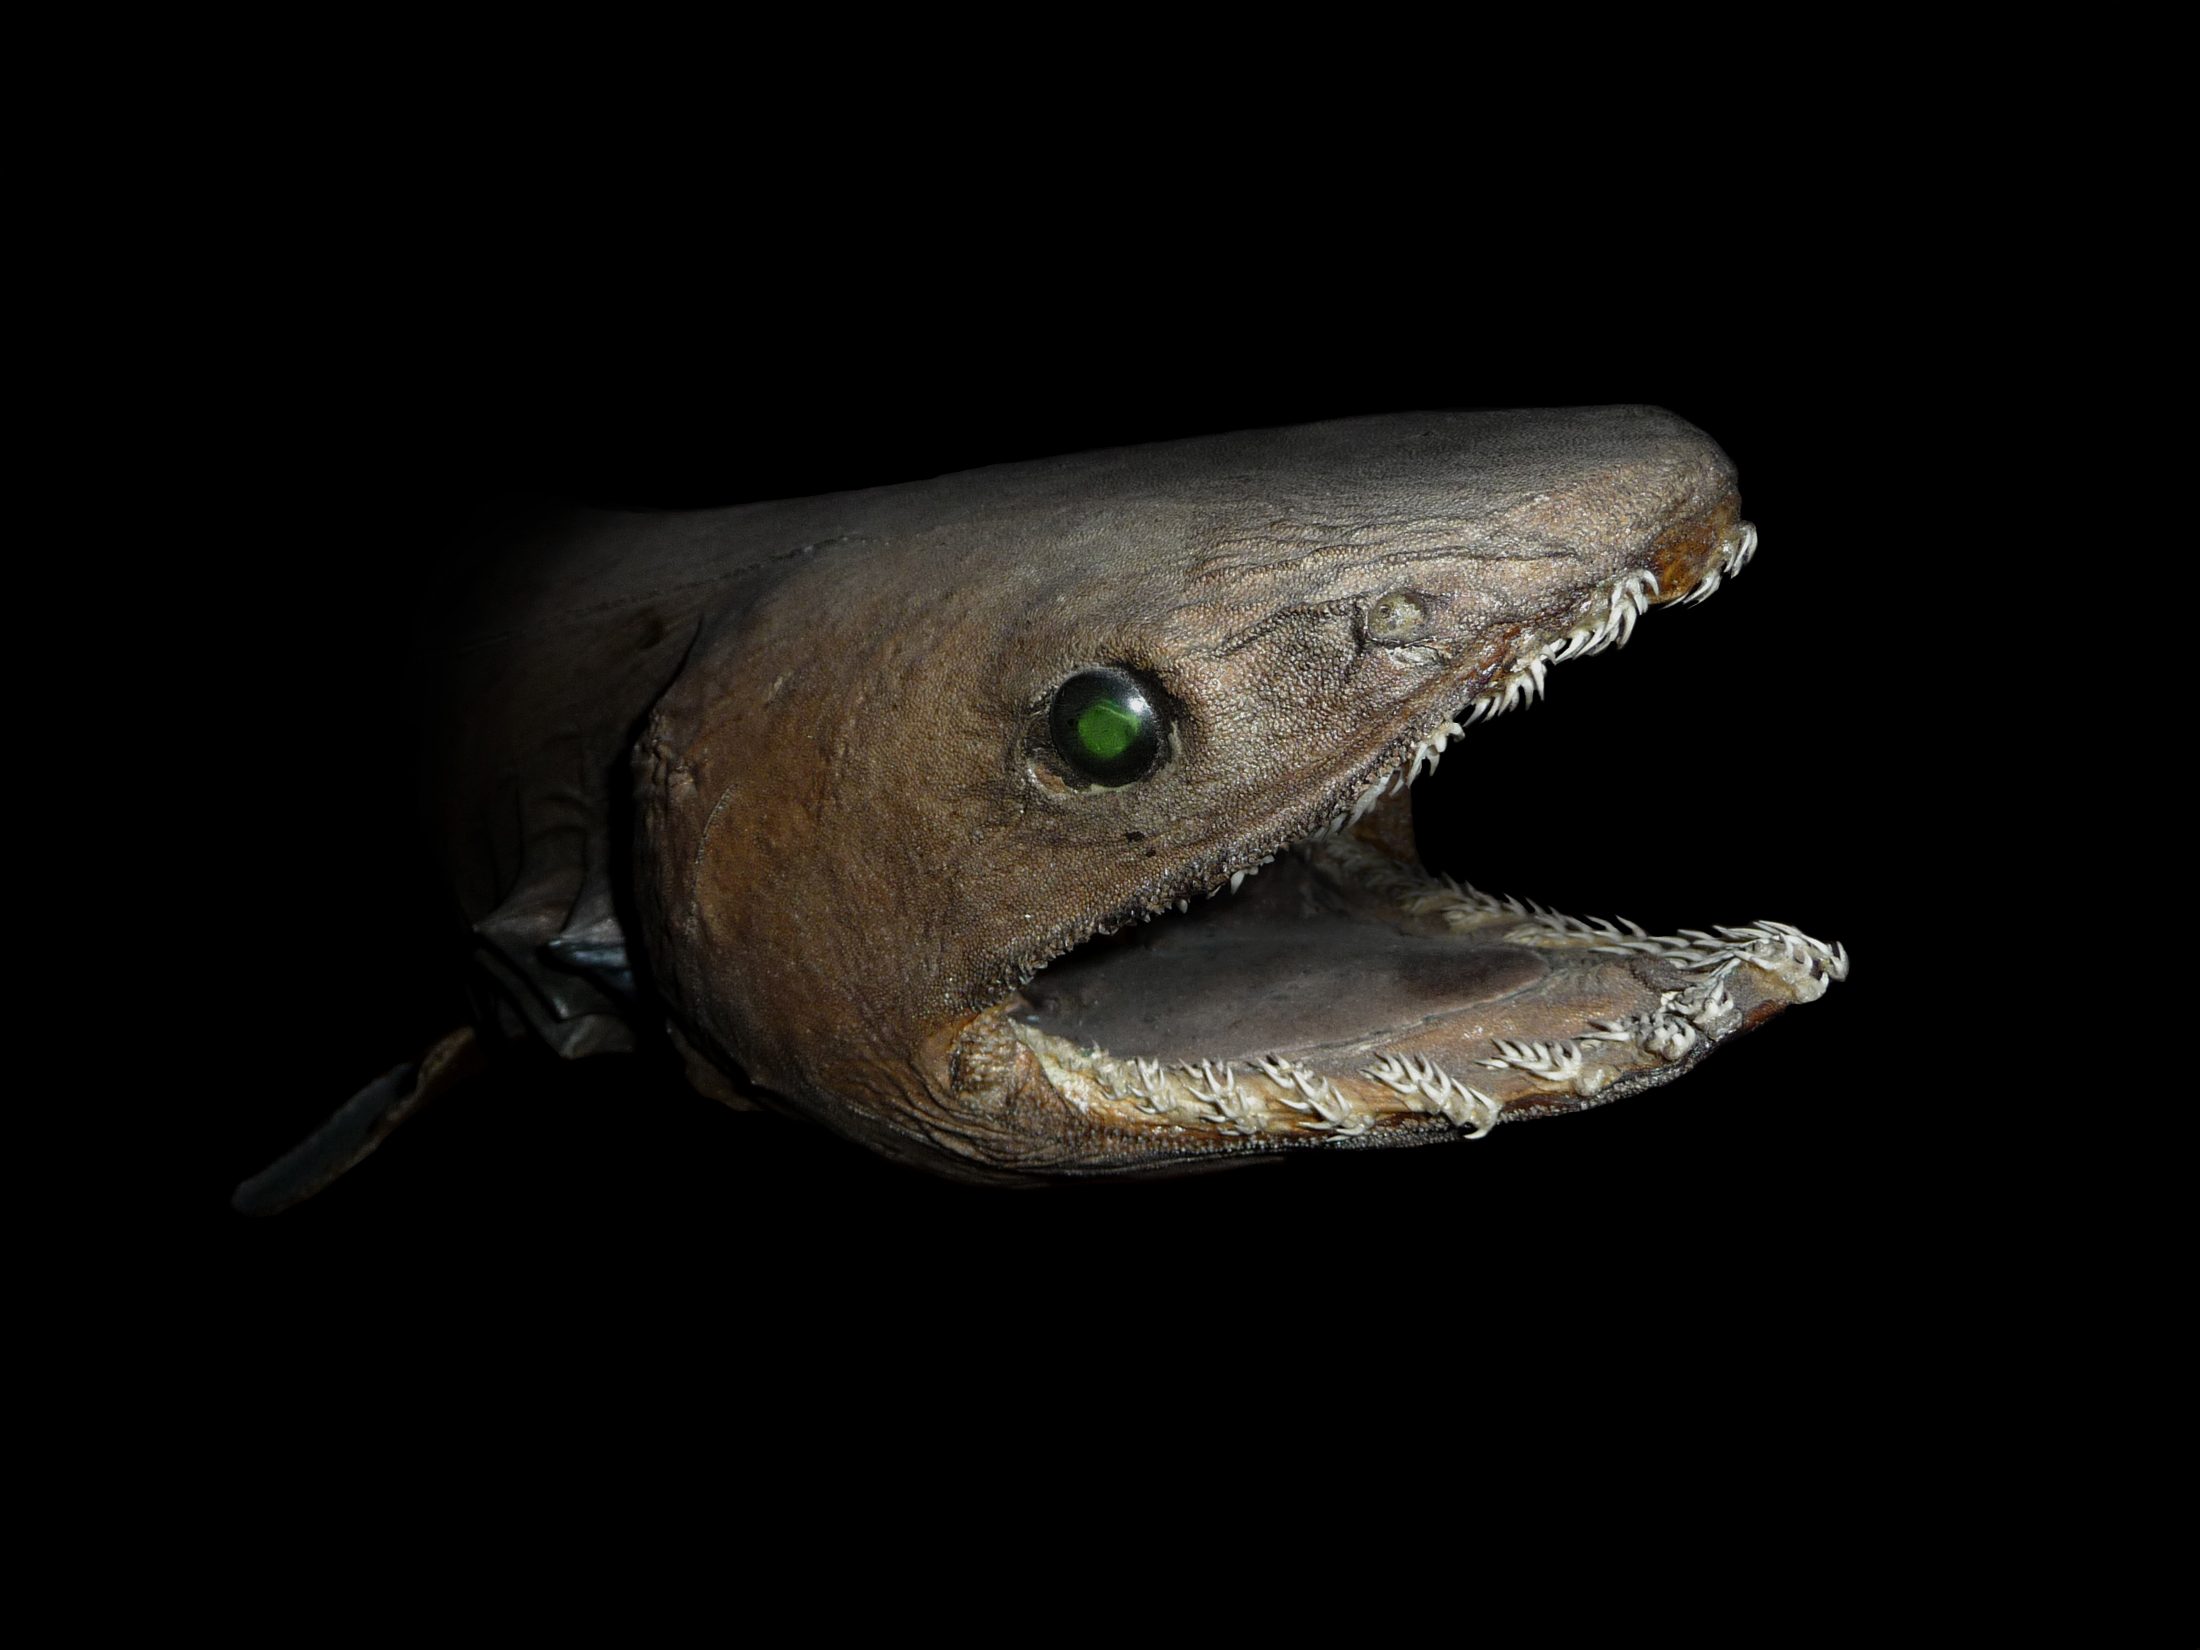 Yes, the frilled shark is really freaky. But there are other 'living fossils' that are just as weird.